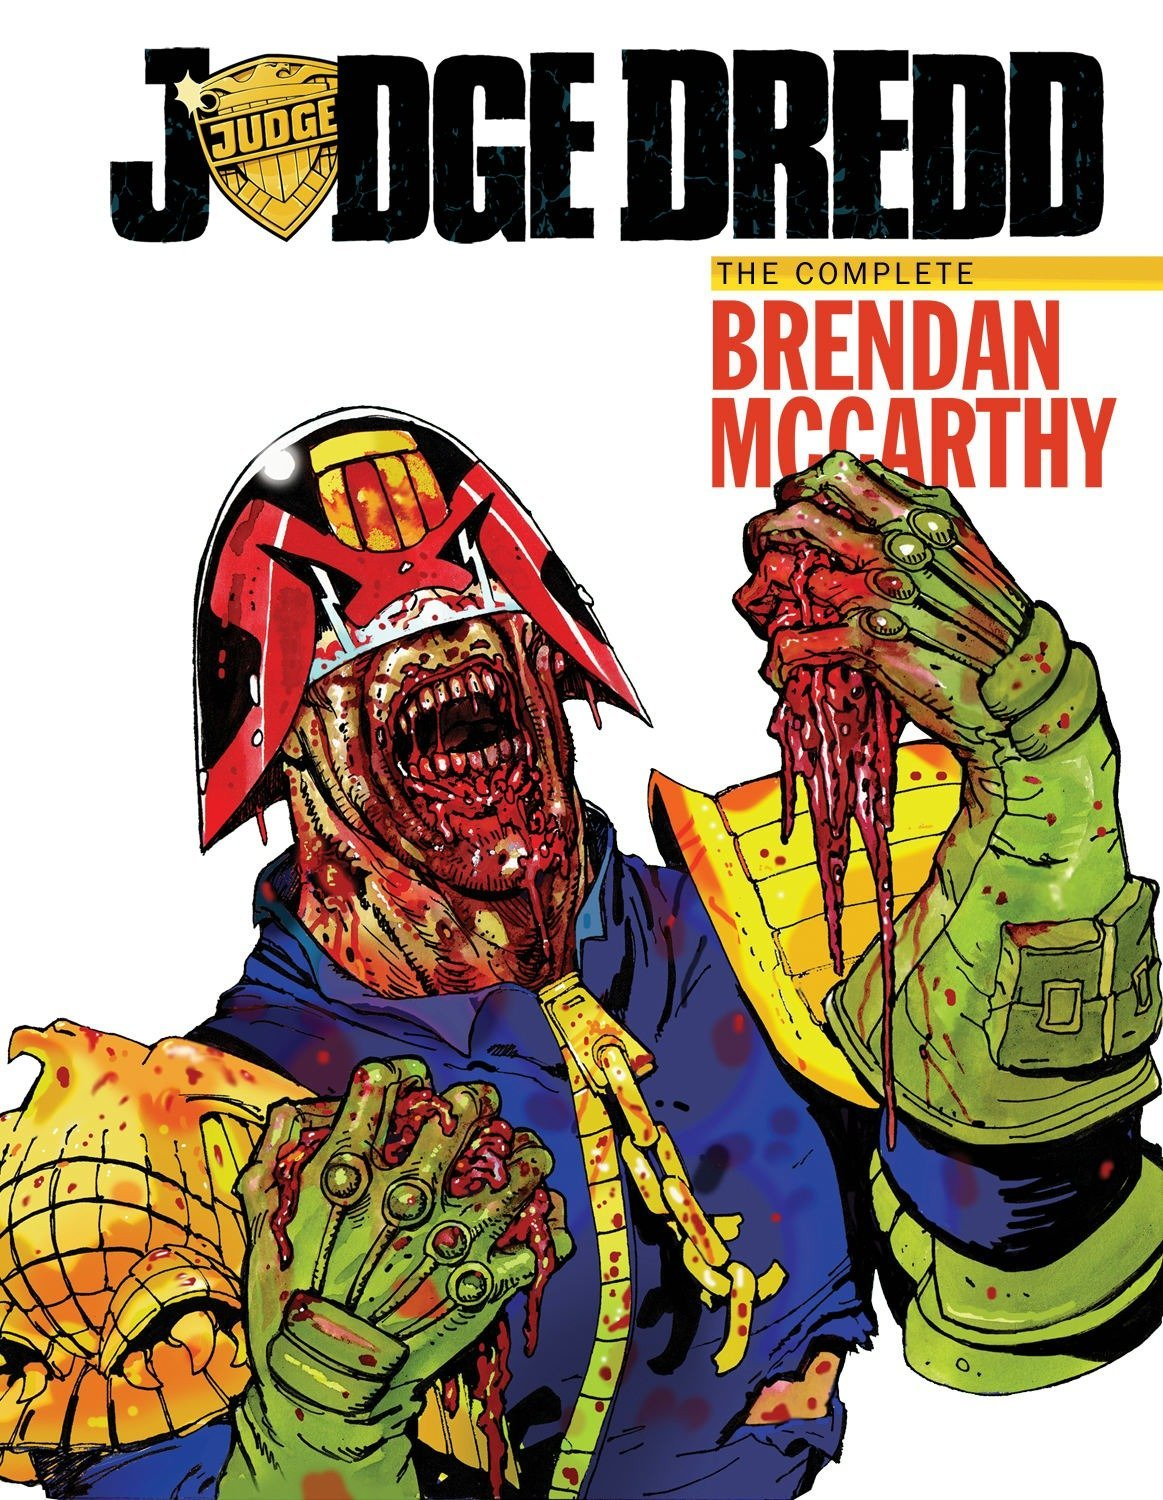 Judge Dredd: The Brendan McCarthy Collection by IDW Publishing